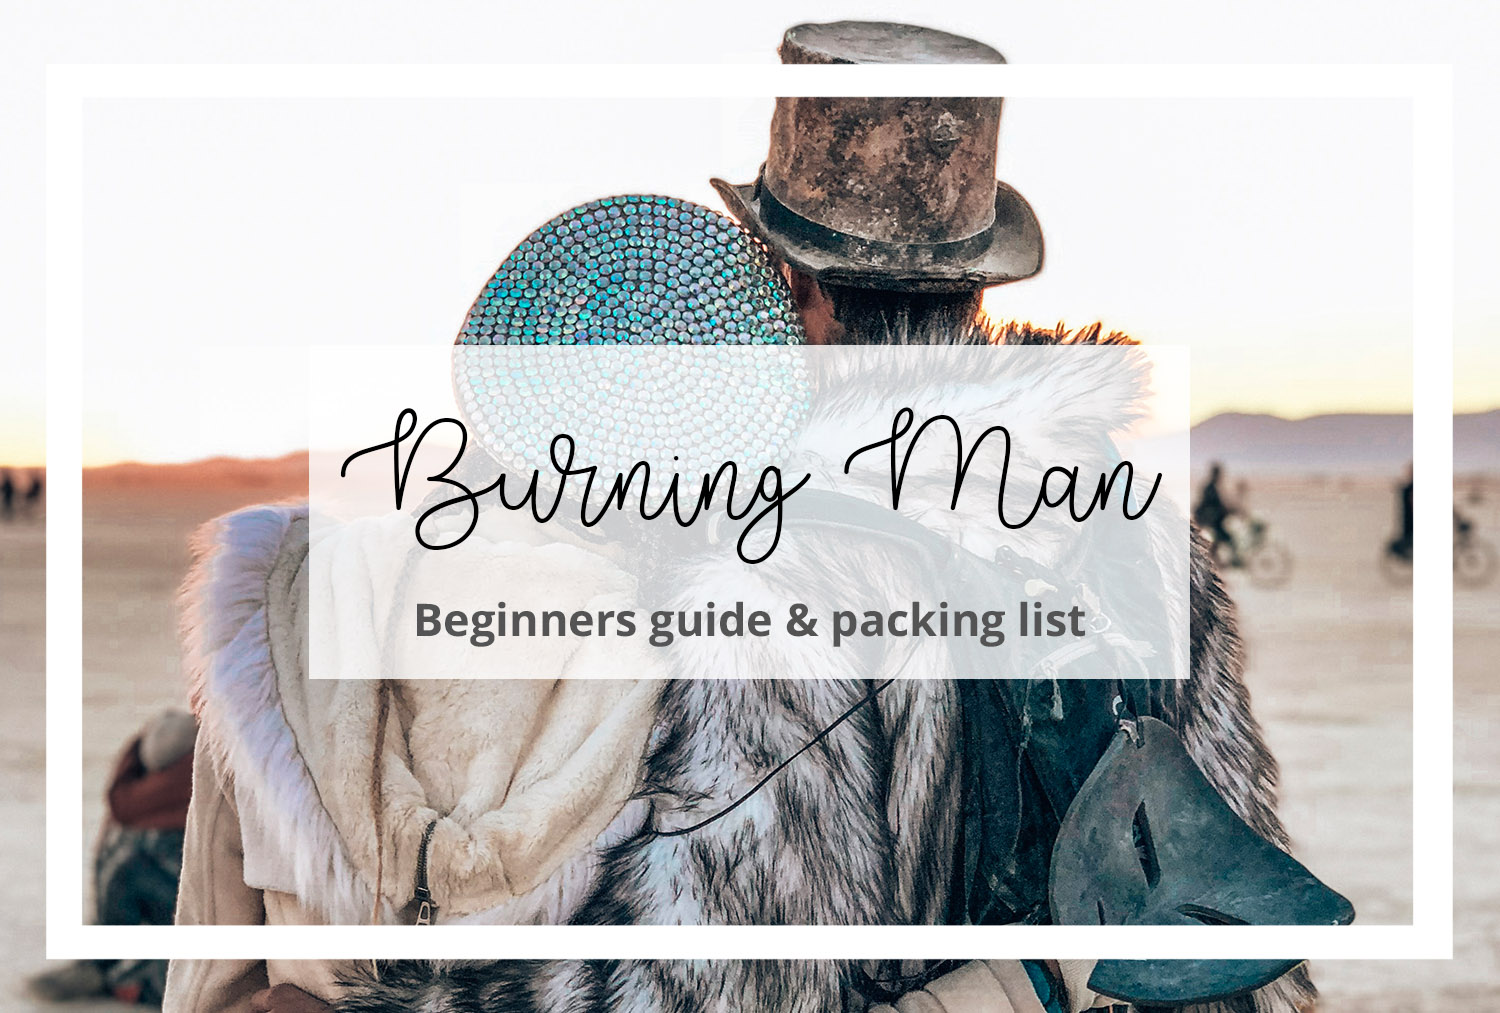 Burning Man Beginners Guide & packing list 2019